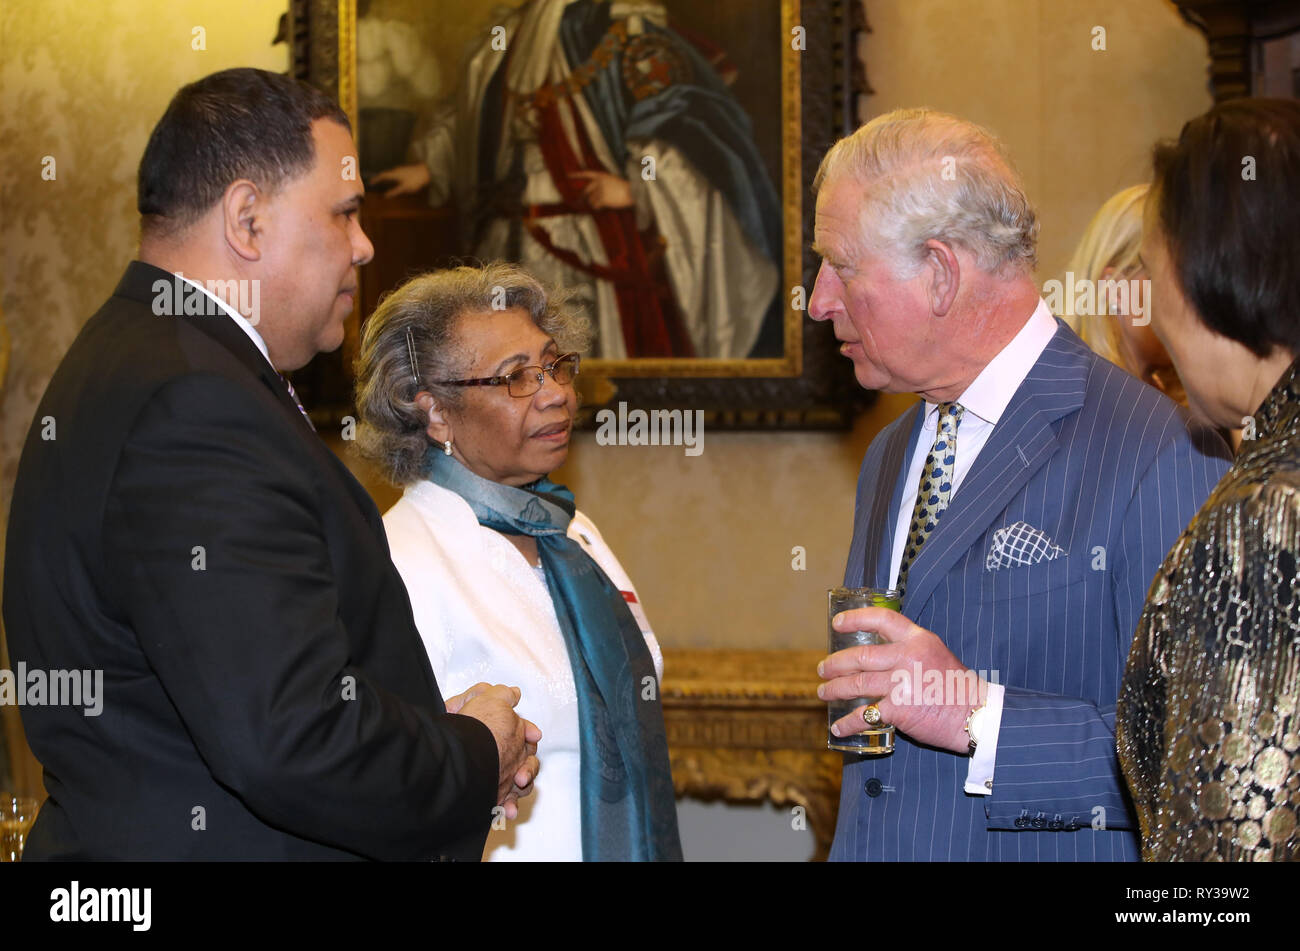 Prince of Wales (right) speaks with guests at the annual Commonwealth Day reception at Marlborough House, the home of the Commonwealth Secretariat in London. Stock Photo